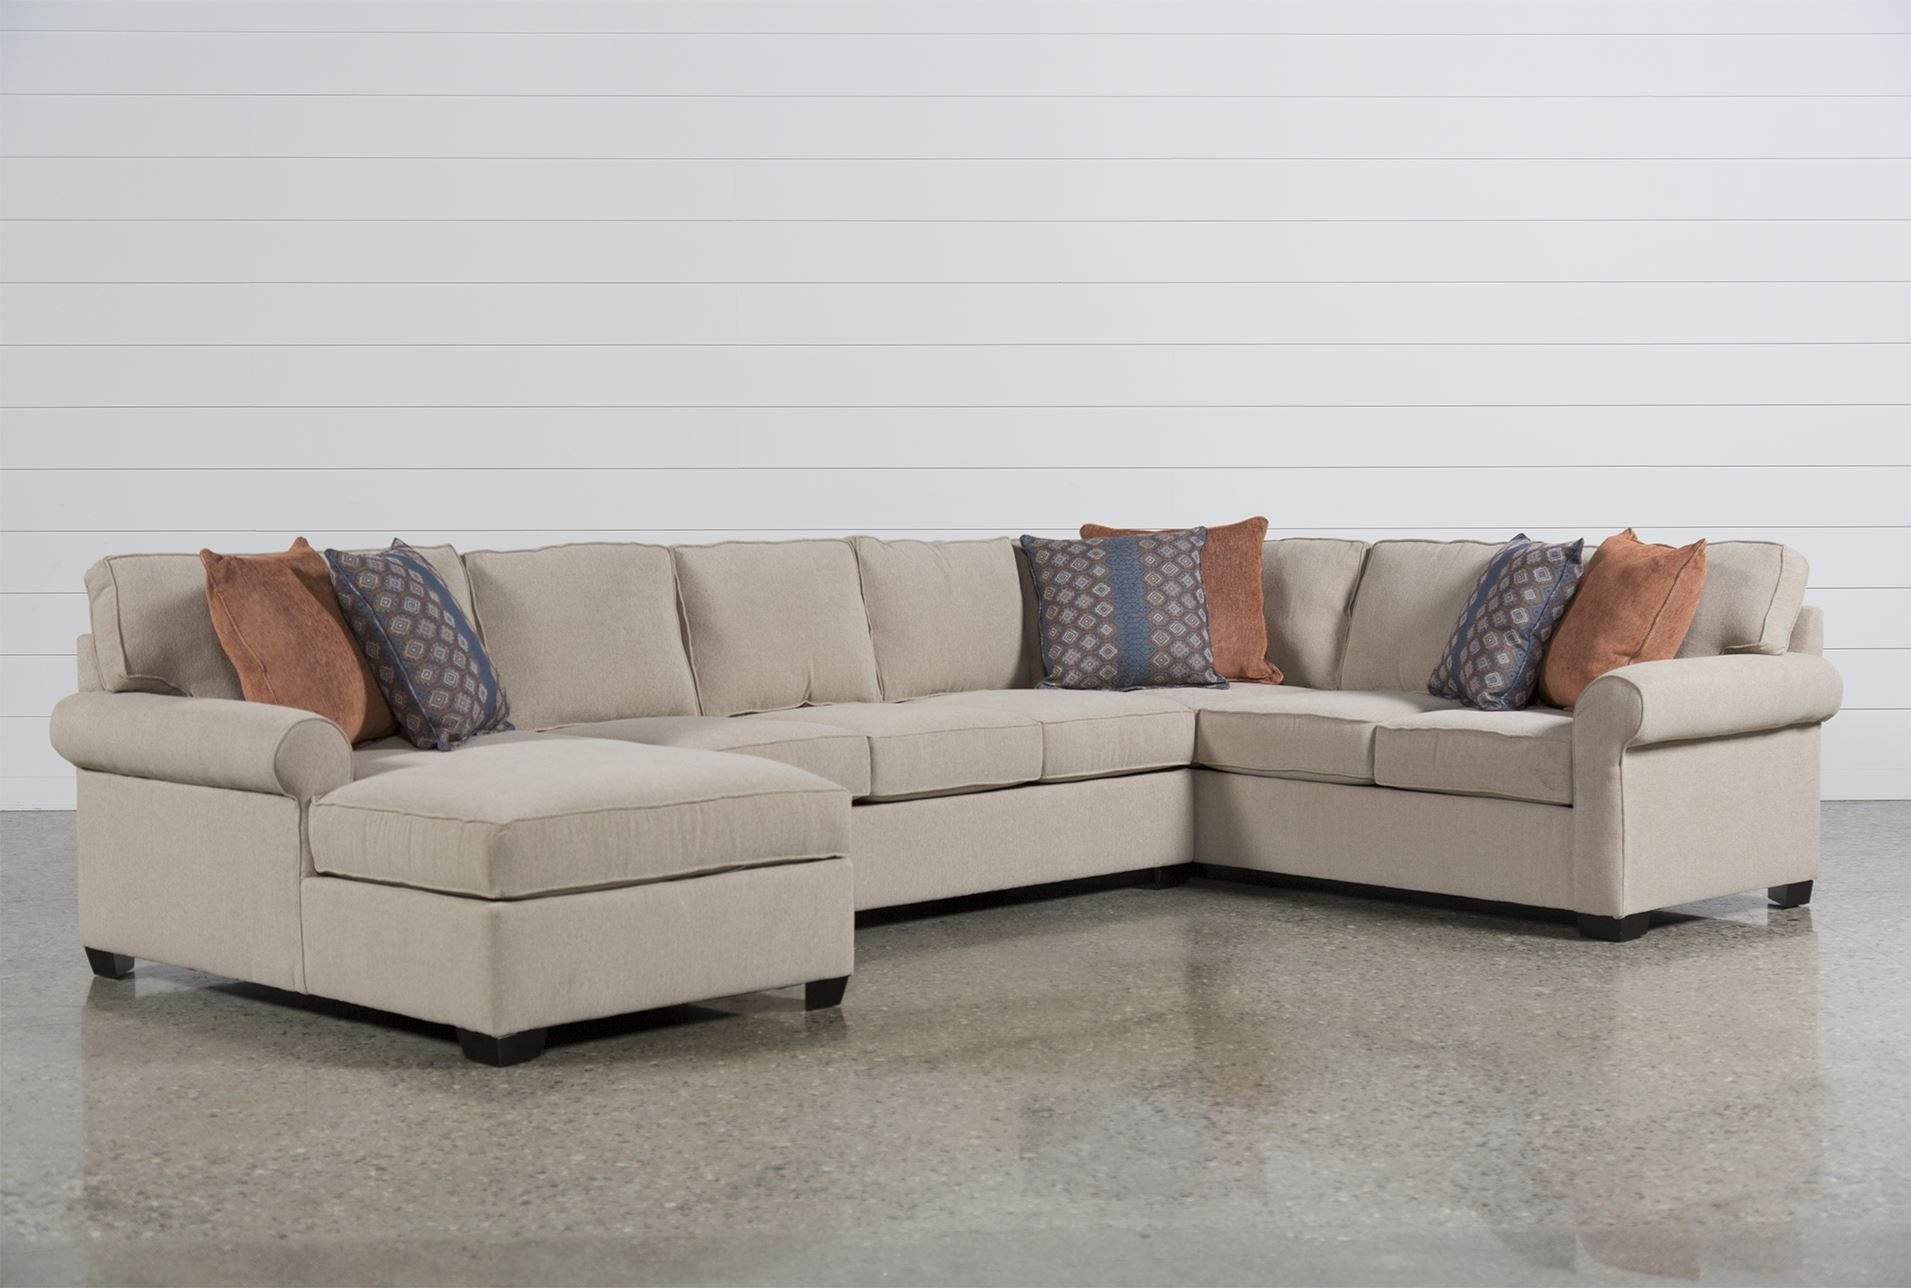 Camilla 3 Piece Sectional W/laf Chaise | Couches | Pinterest Pertaining To Glamour Ii 3 Piece Sectionals (View 5 of 25)